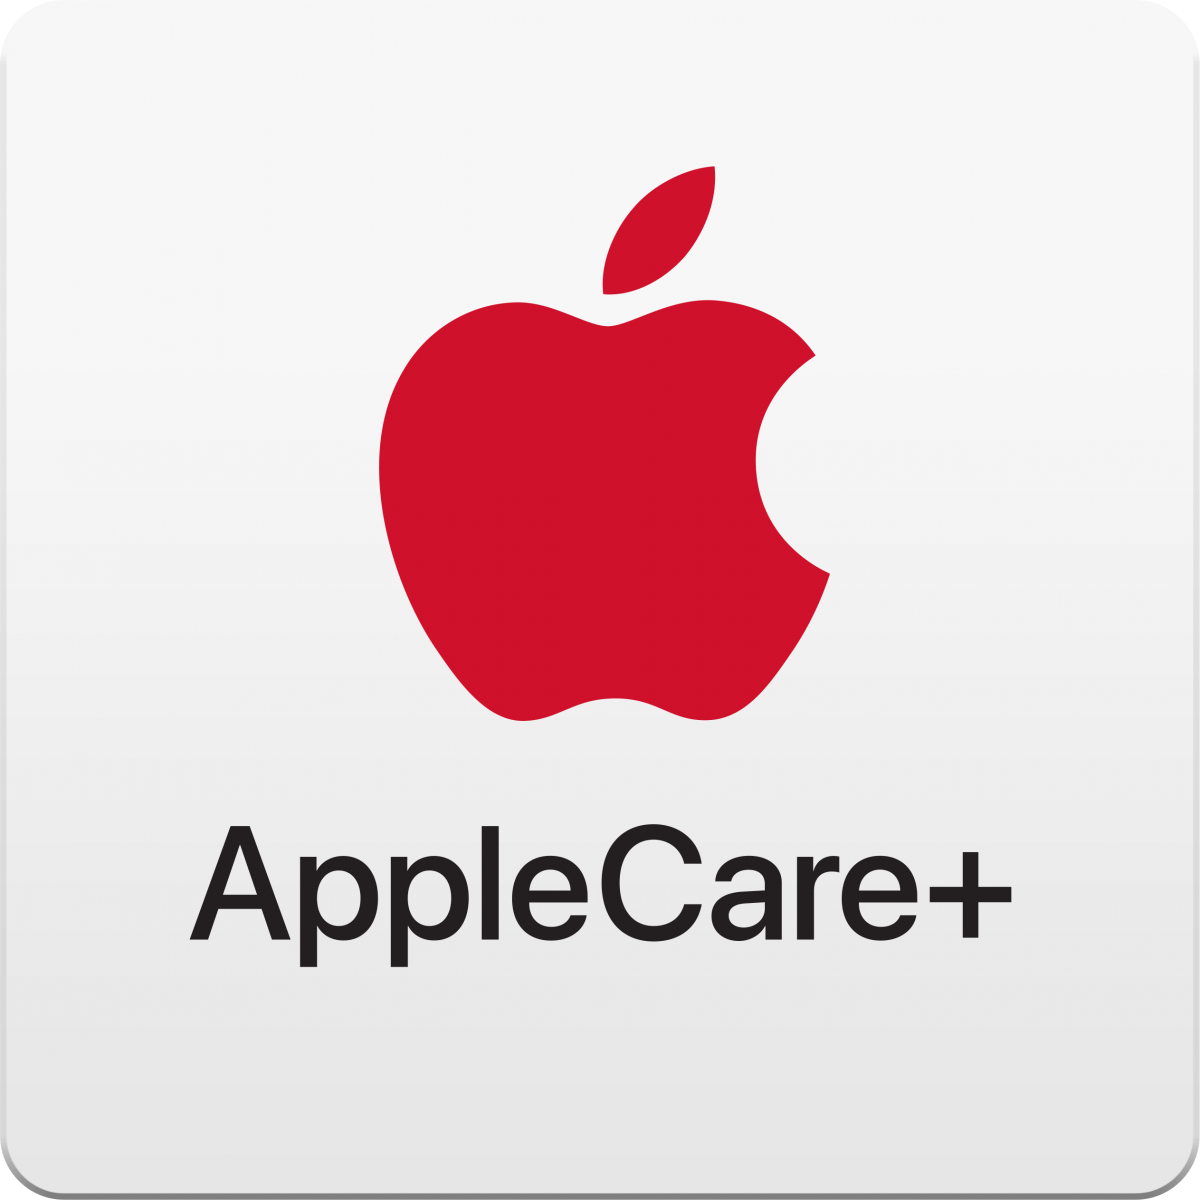 AppleCare+ for AirPods Max